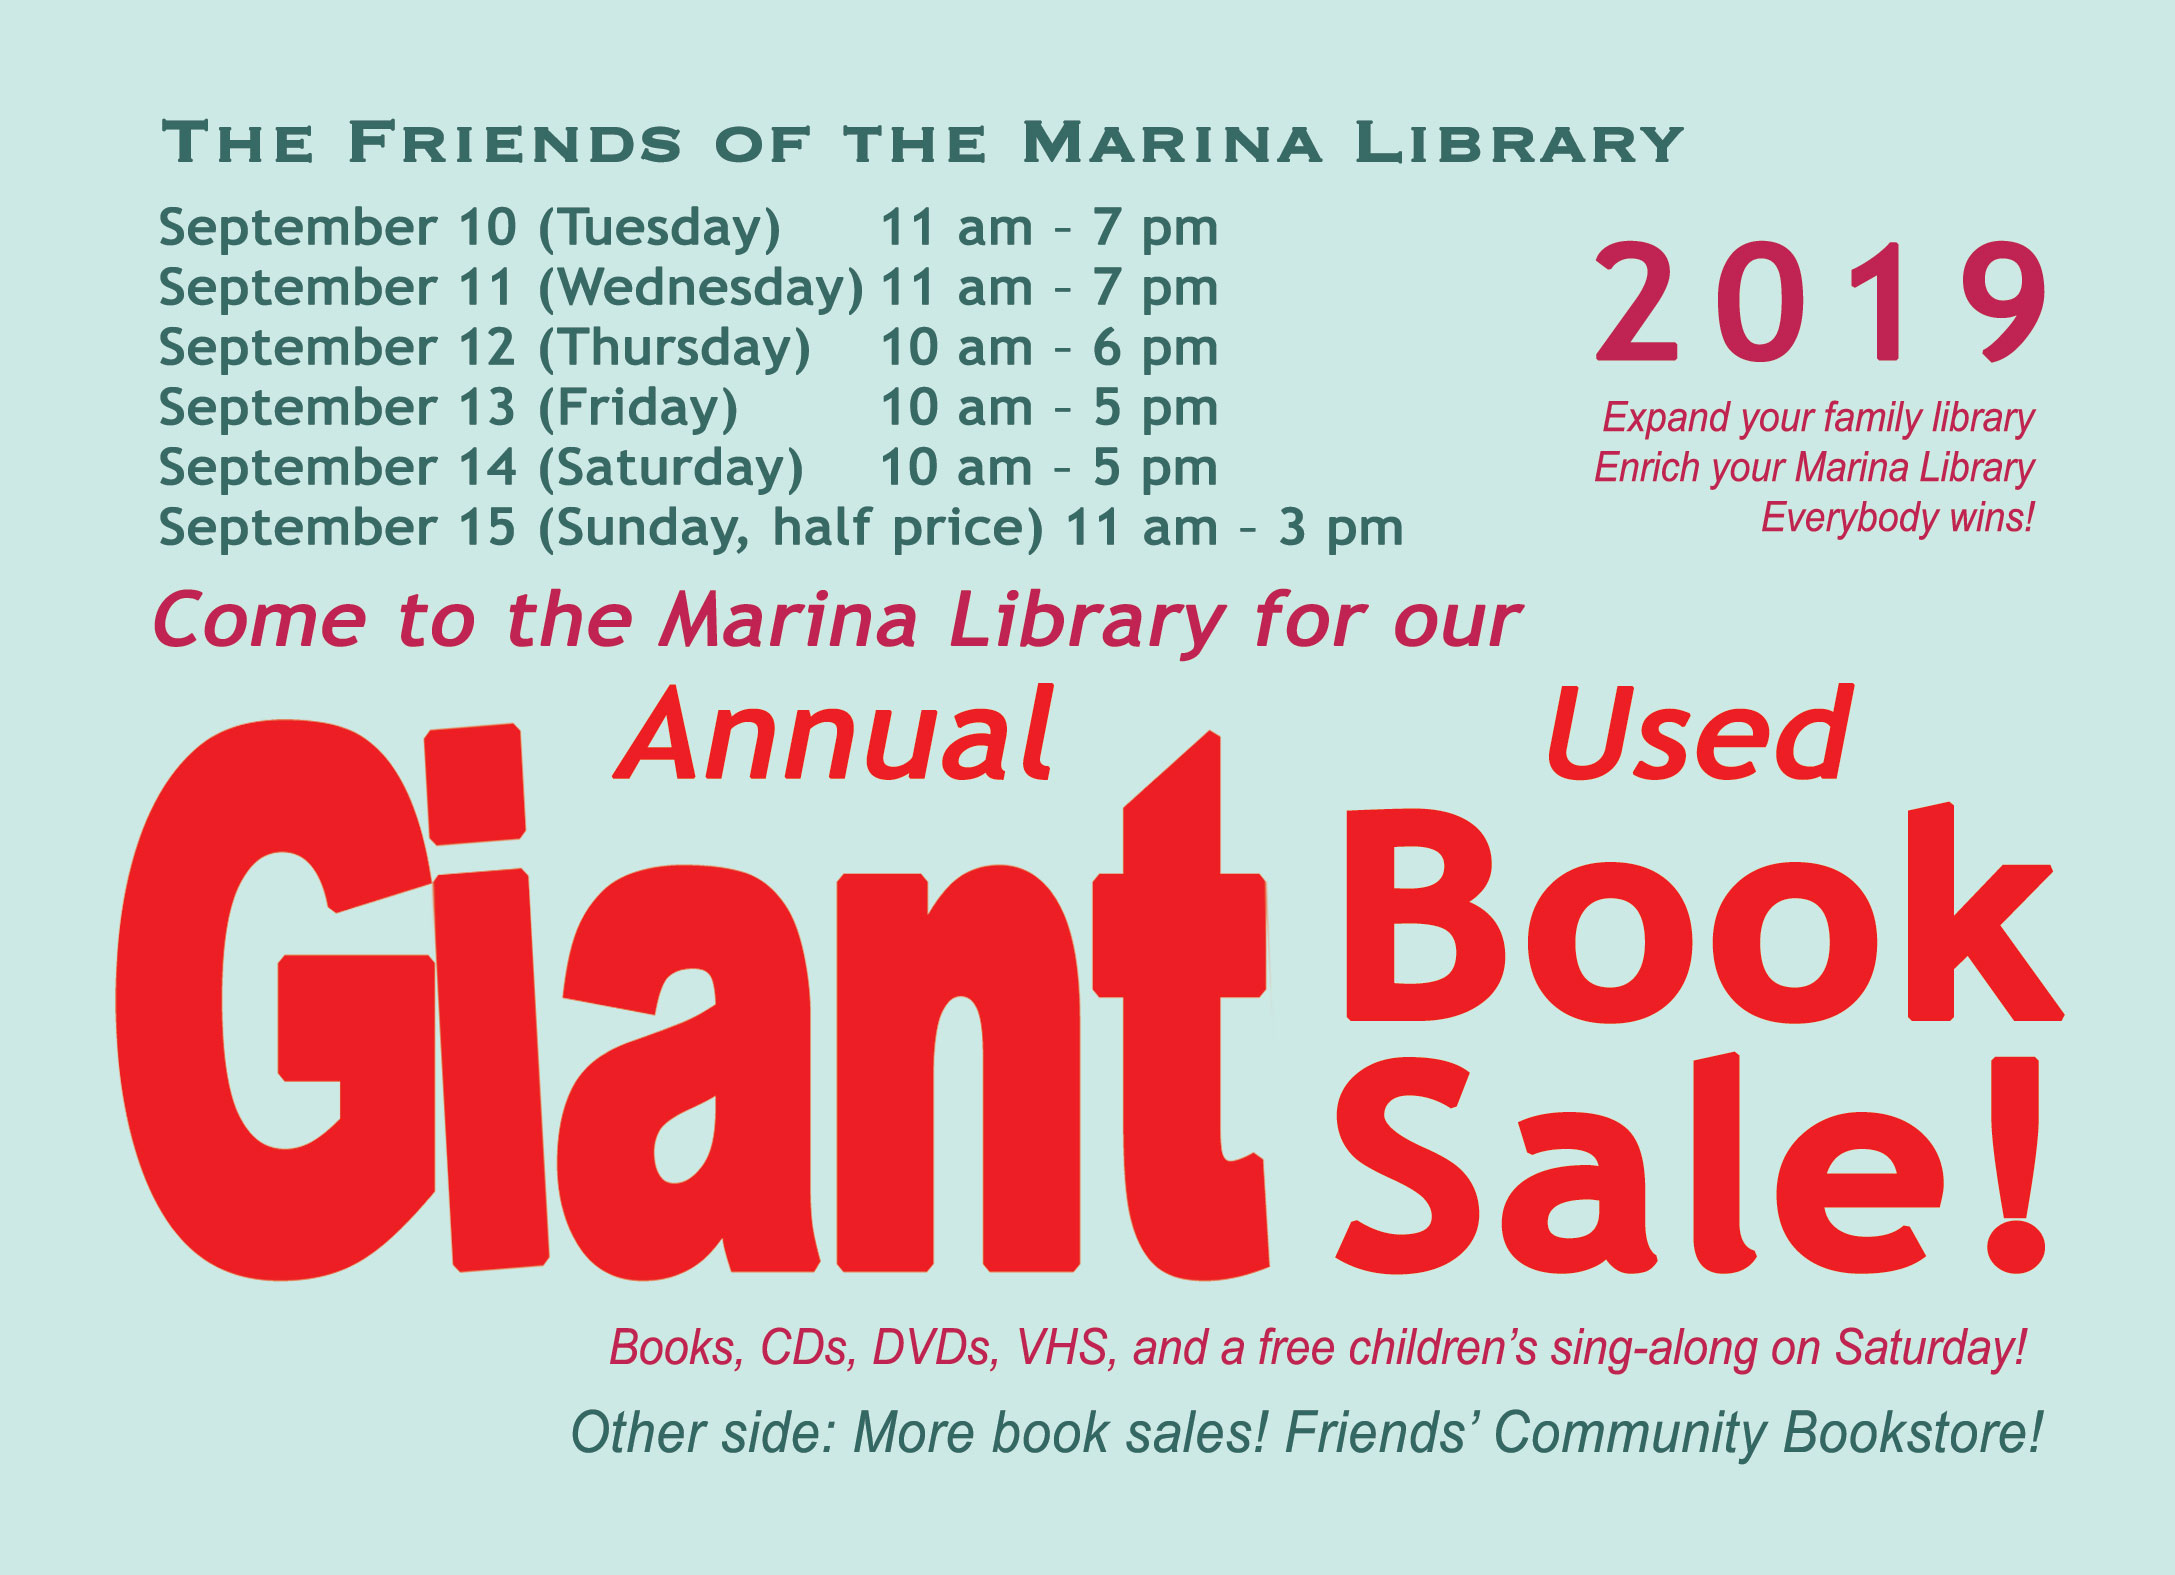 Book Sales & Book Donations | The Friends of the Marina Library